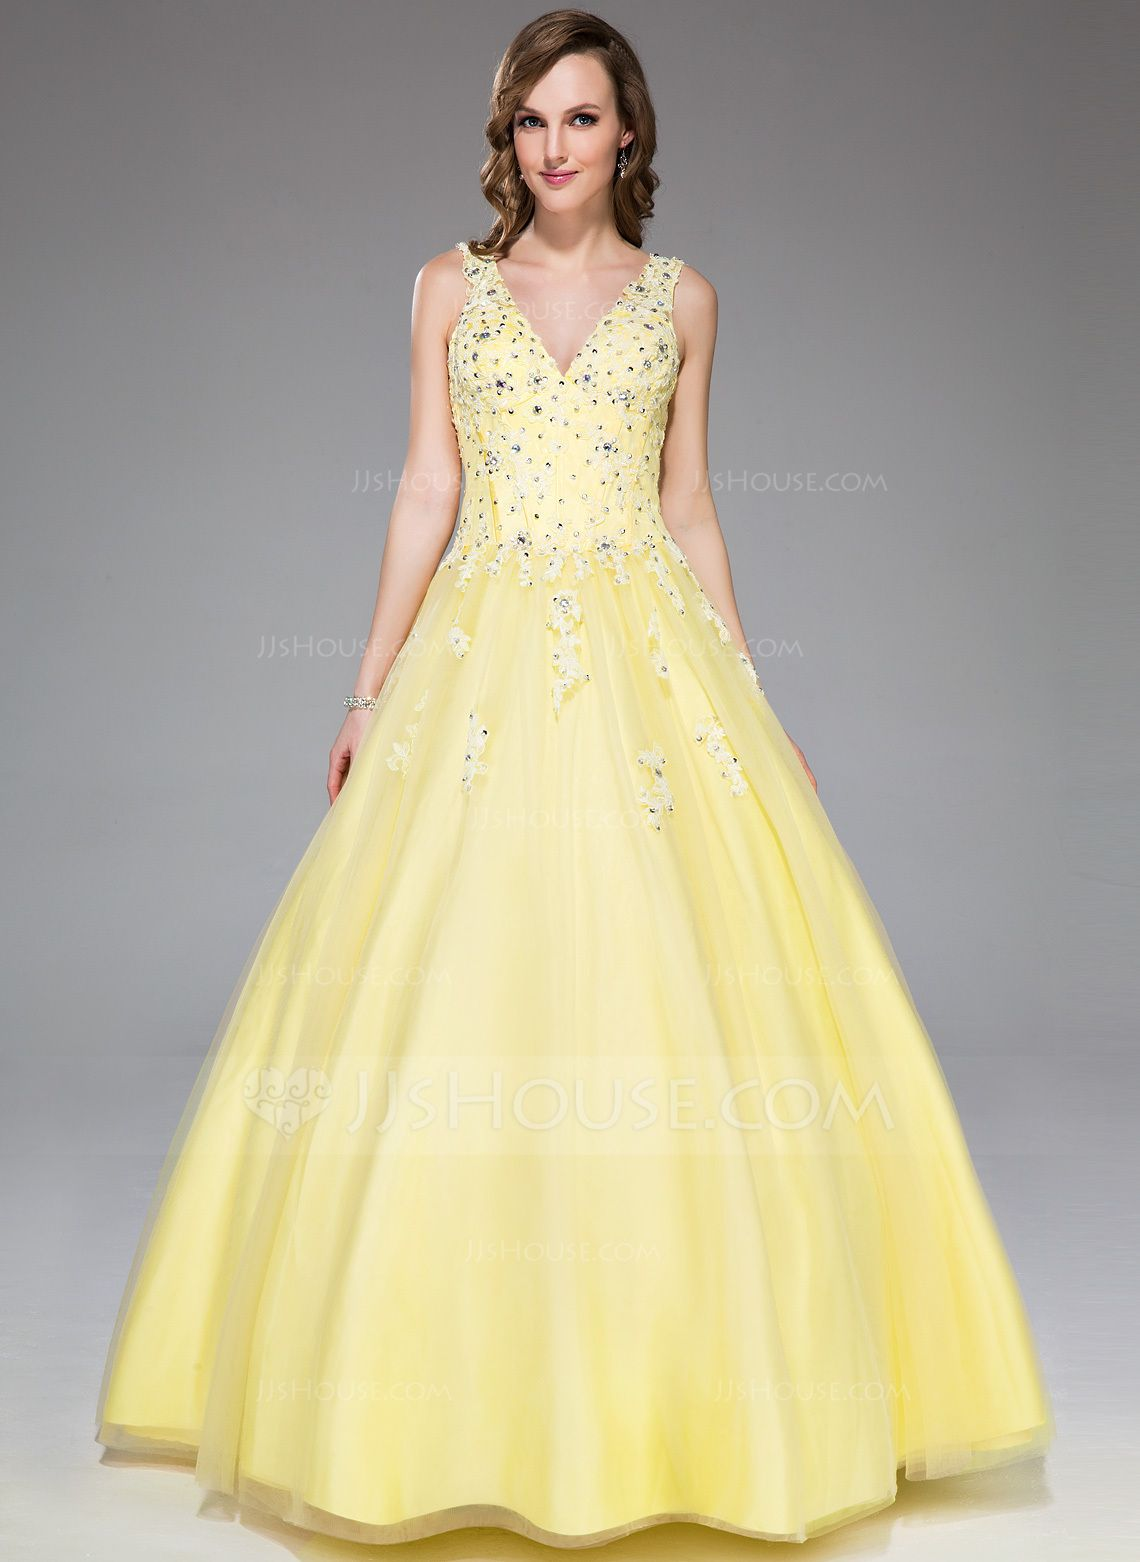 f5c8b04975be Ball-Gown V-neck Floor-Length Satin Tulle Prom Dress With Lace Beading  Sequins (017045177) - JJsHouse